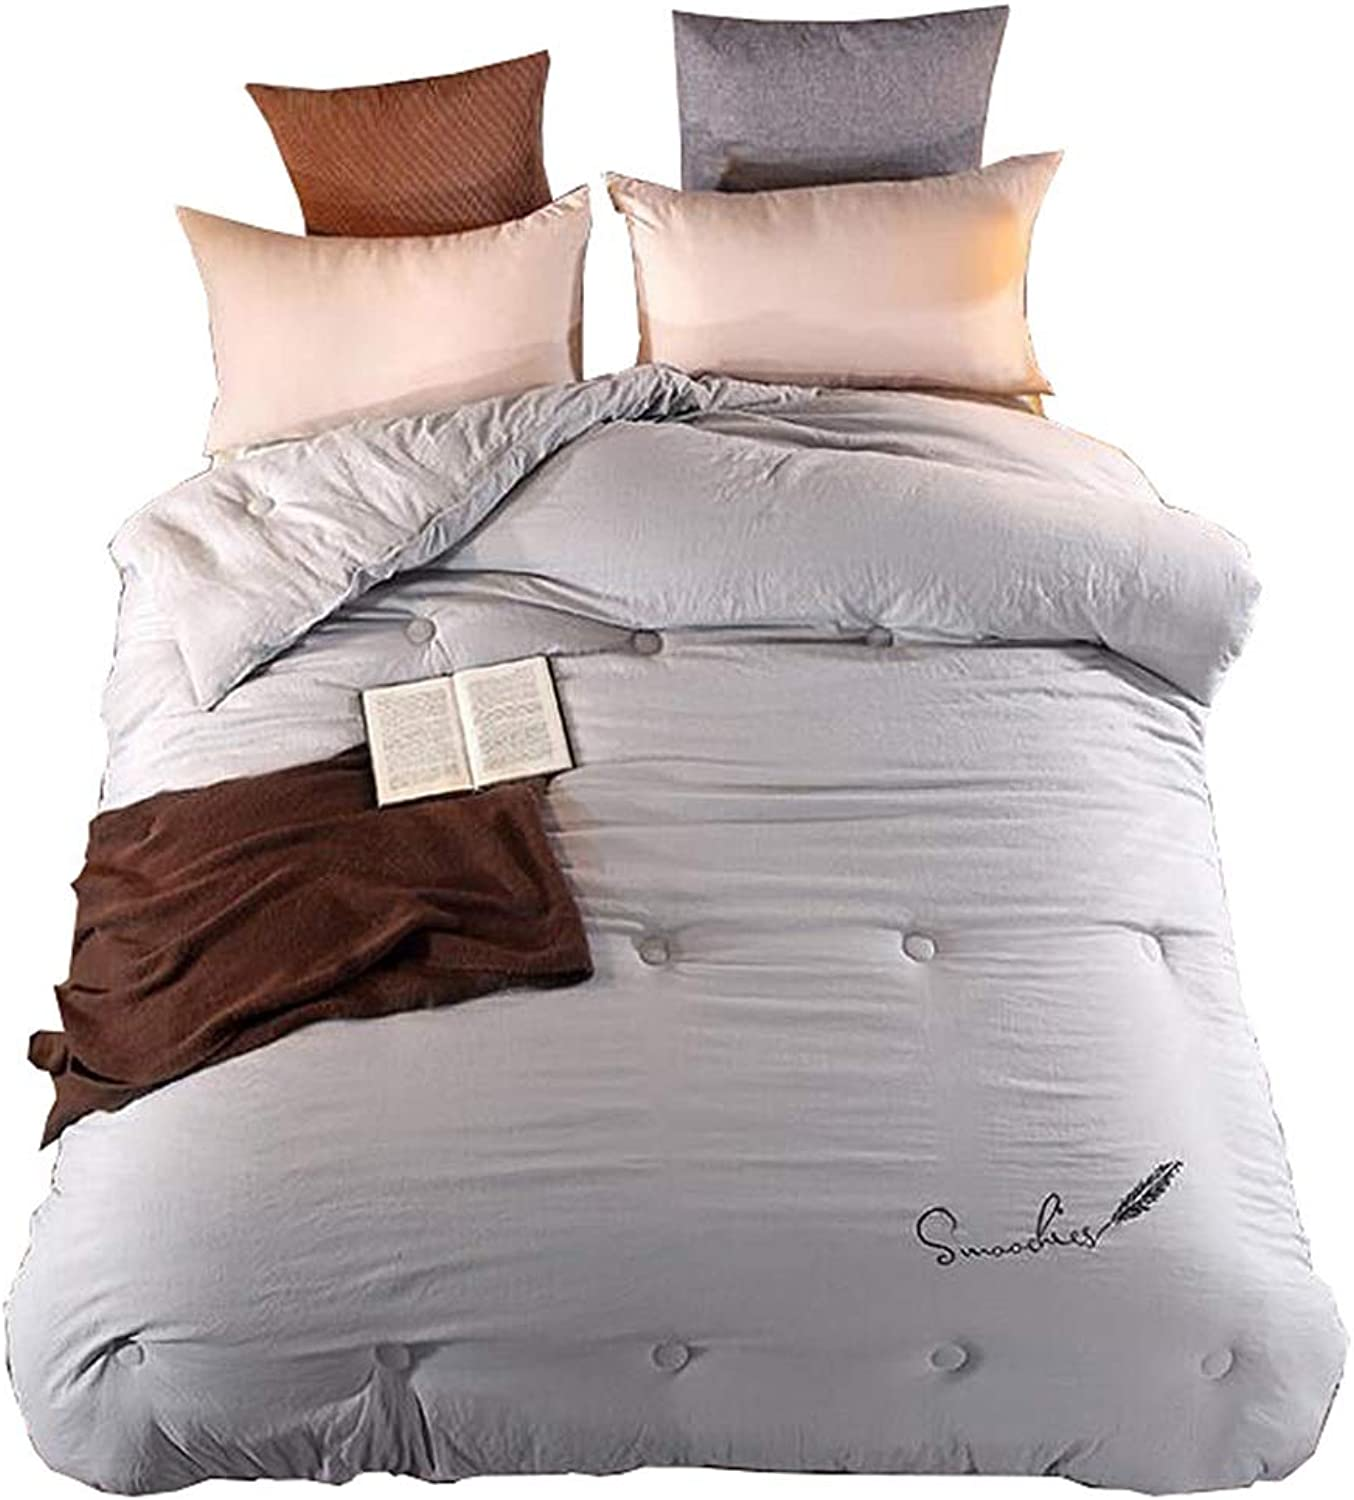 Quilt with Corner King Size Bedding Set Loops Anti-Allergenic and Dust Mite Resistant Super King Warm and Soft for All Season (Size   150cmx200cm2kg)